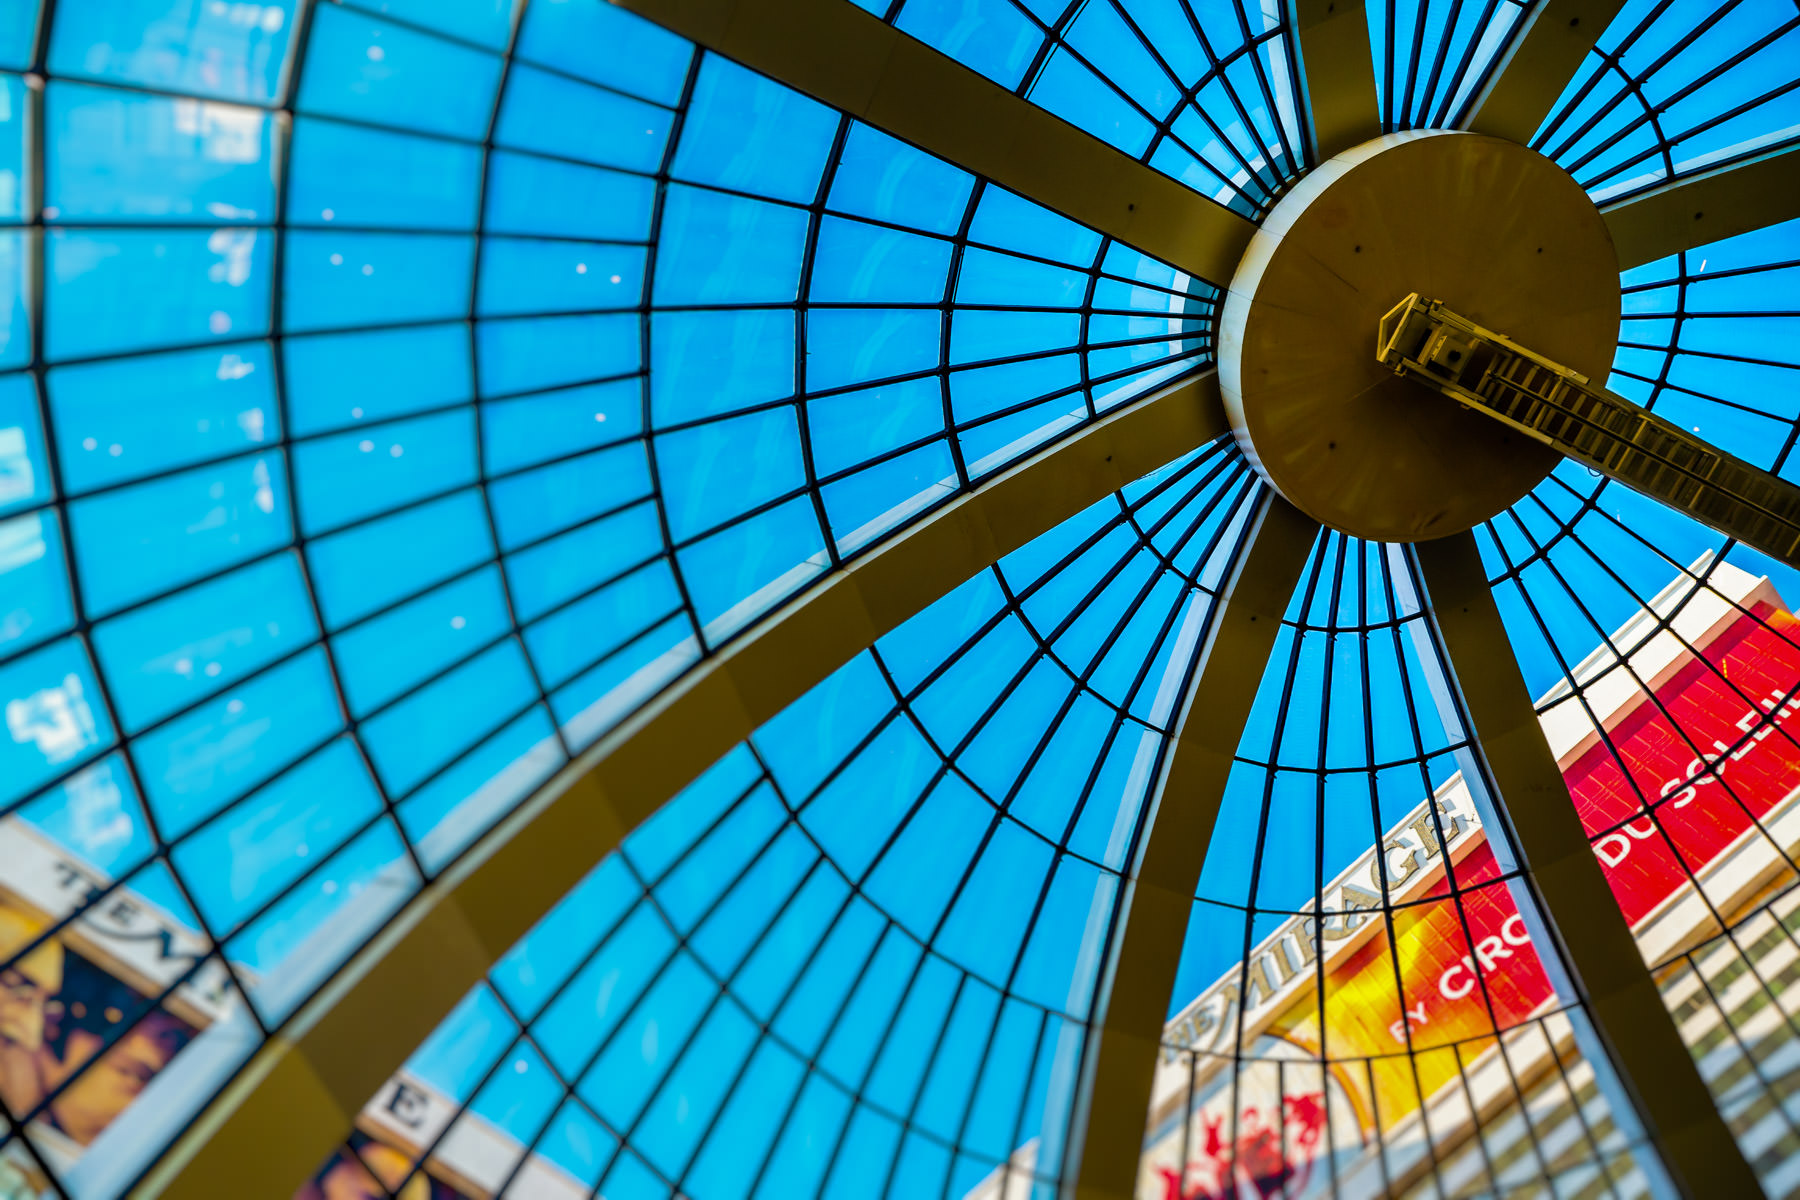 The inner surface of the glass dome at The Mirage, Las Vegas.